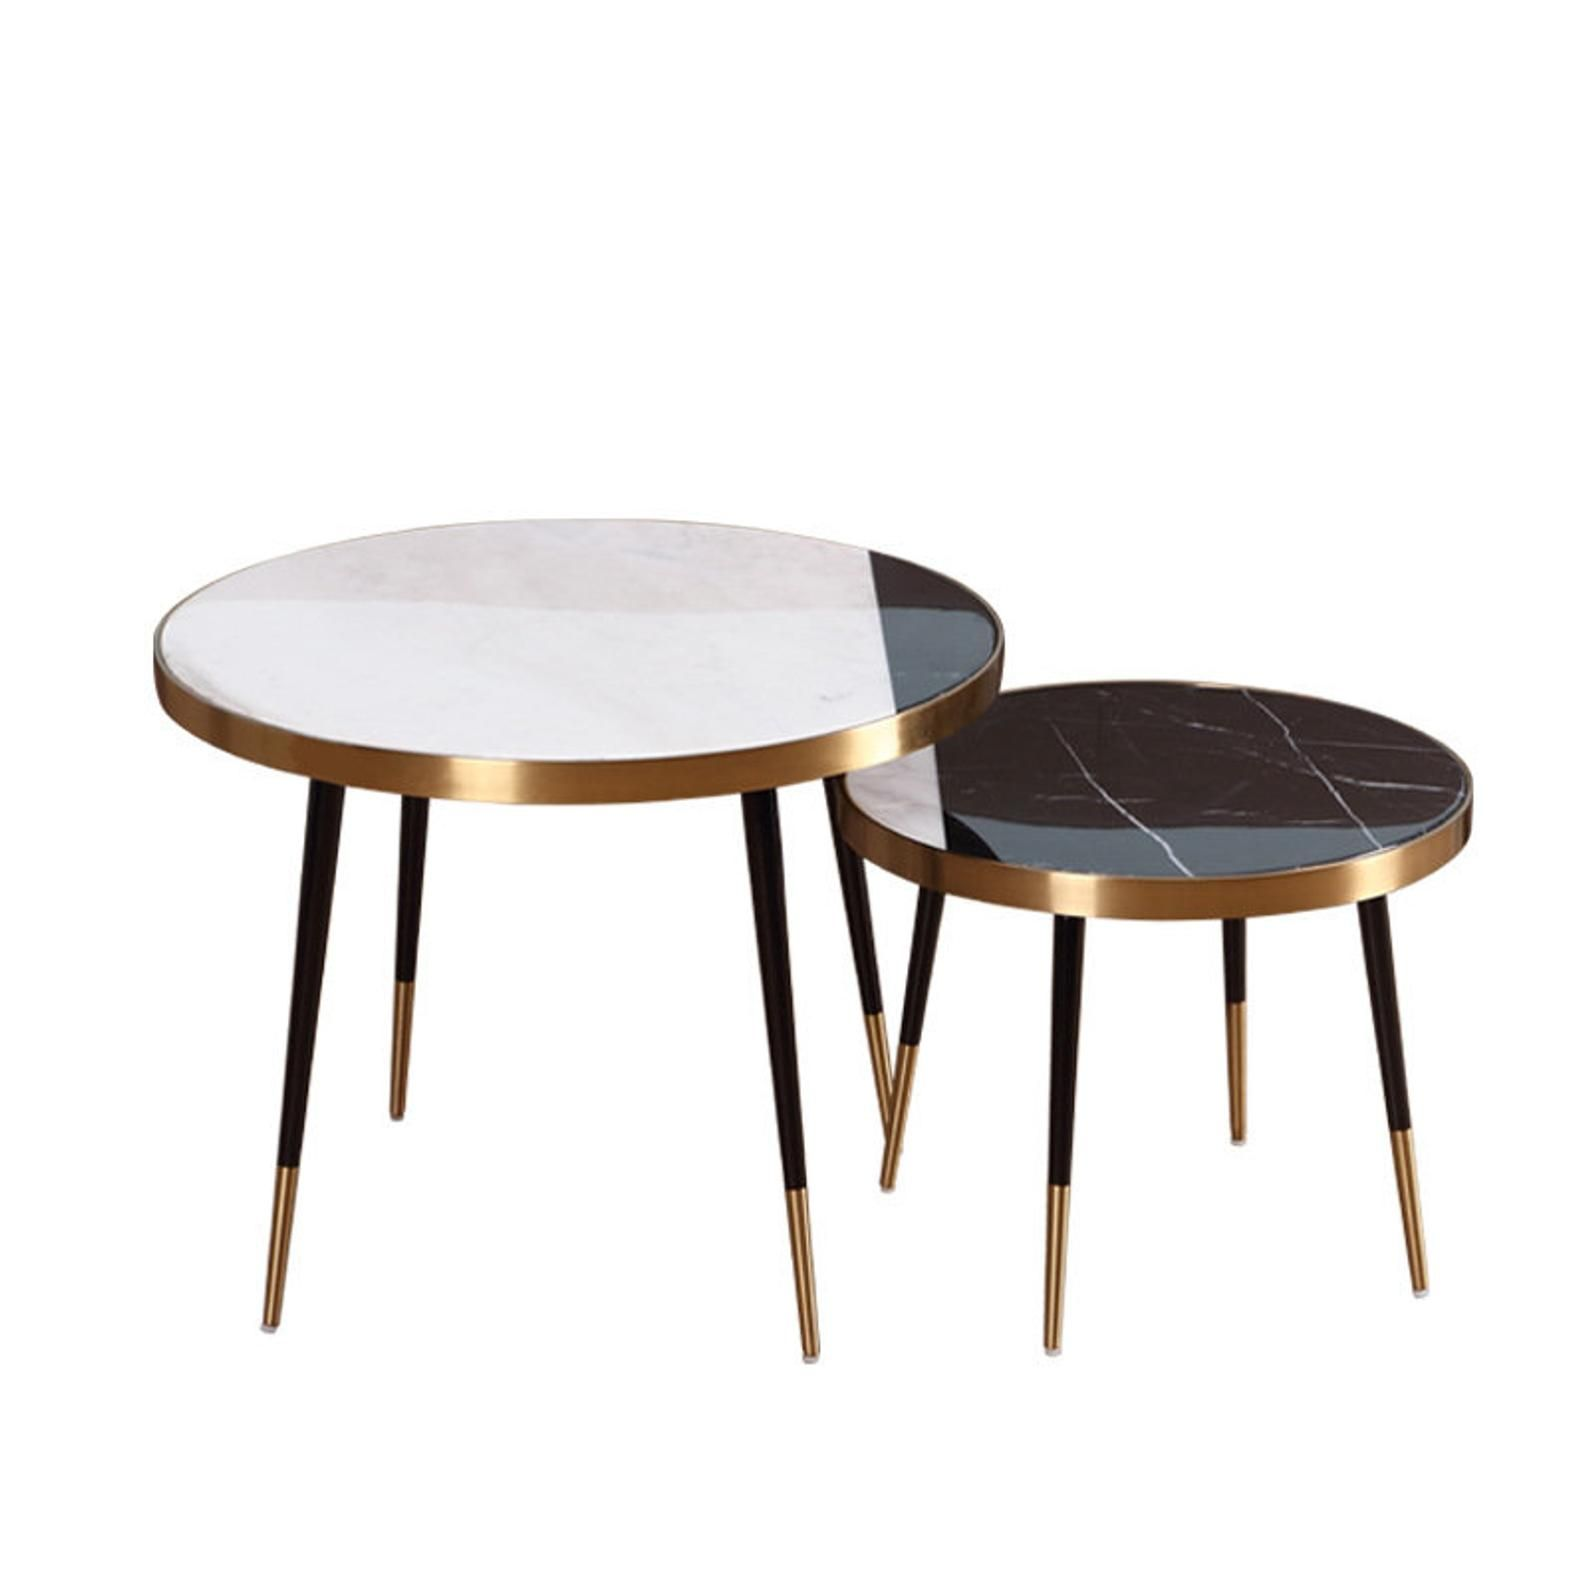 Pin By Syllabubble On Store Design Chic Coffee Table Stone Coffee Table Large Coffee Tables [ 1000 x 1000 Pixel ]